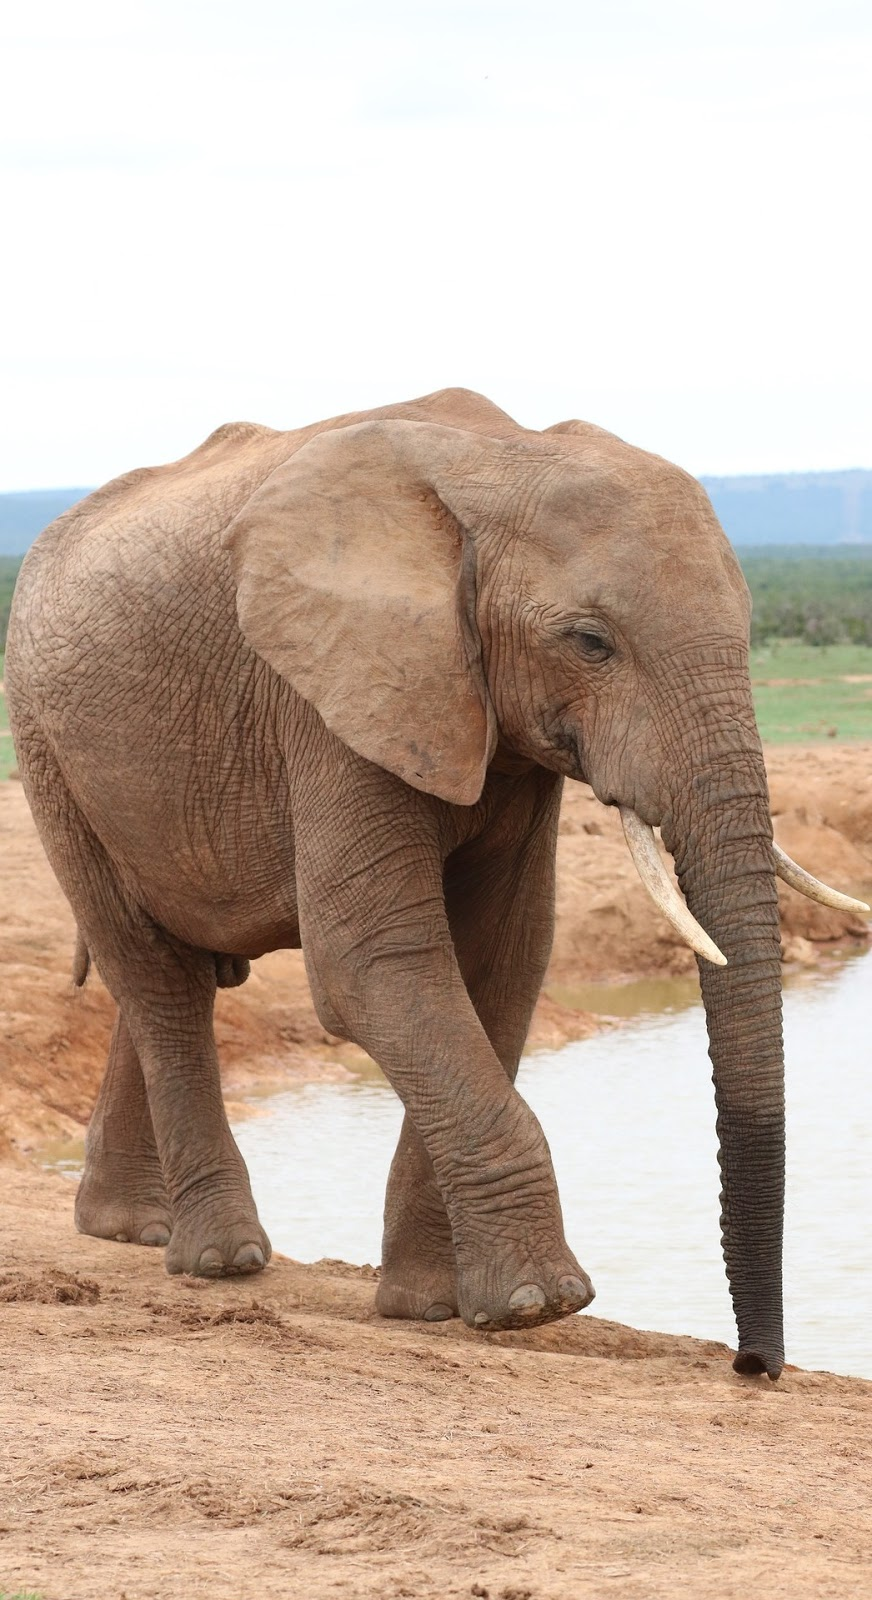 An elephant near a water hole.